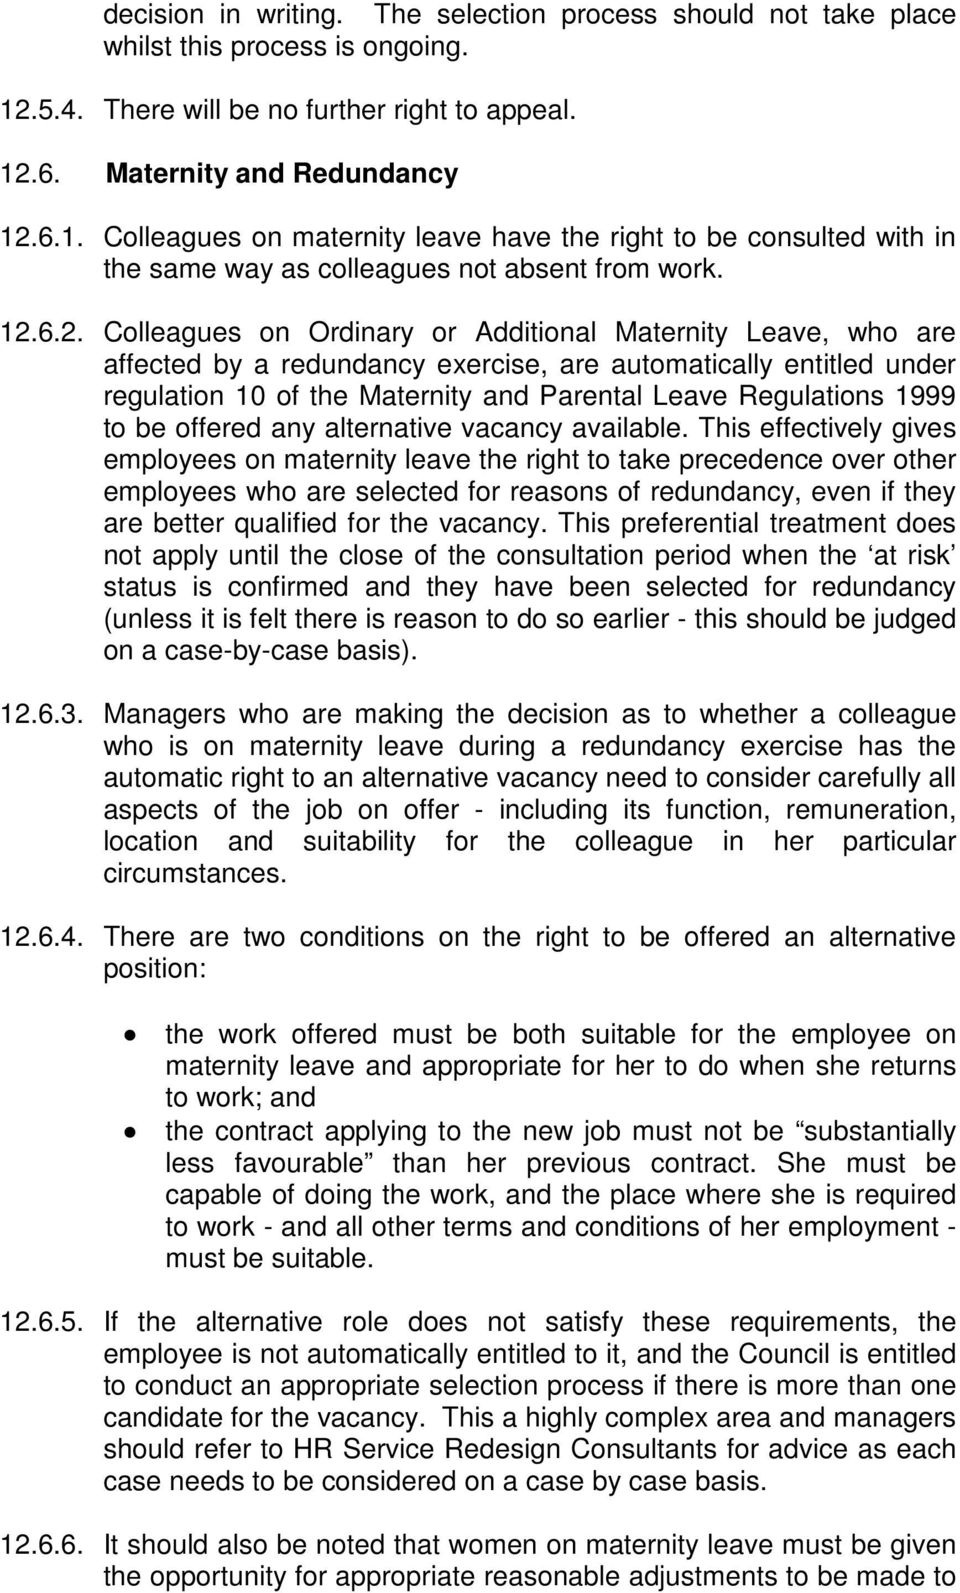 12.6.2. Colleagues on Ordinary or Additional Maternity Leave, who are affected by a redundancy exercise, are automatically entitled under regulation 10 of the Maternity and Parental Leave Regulations